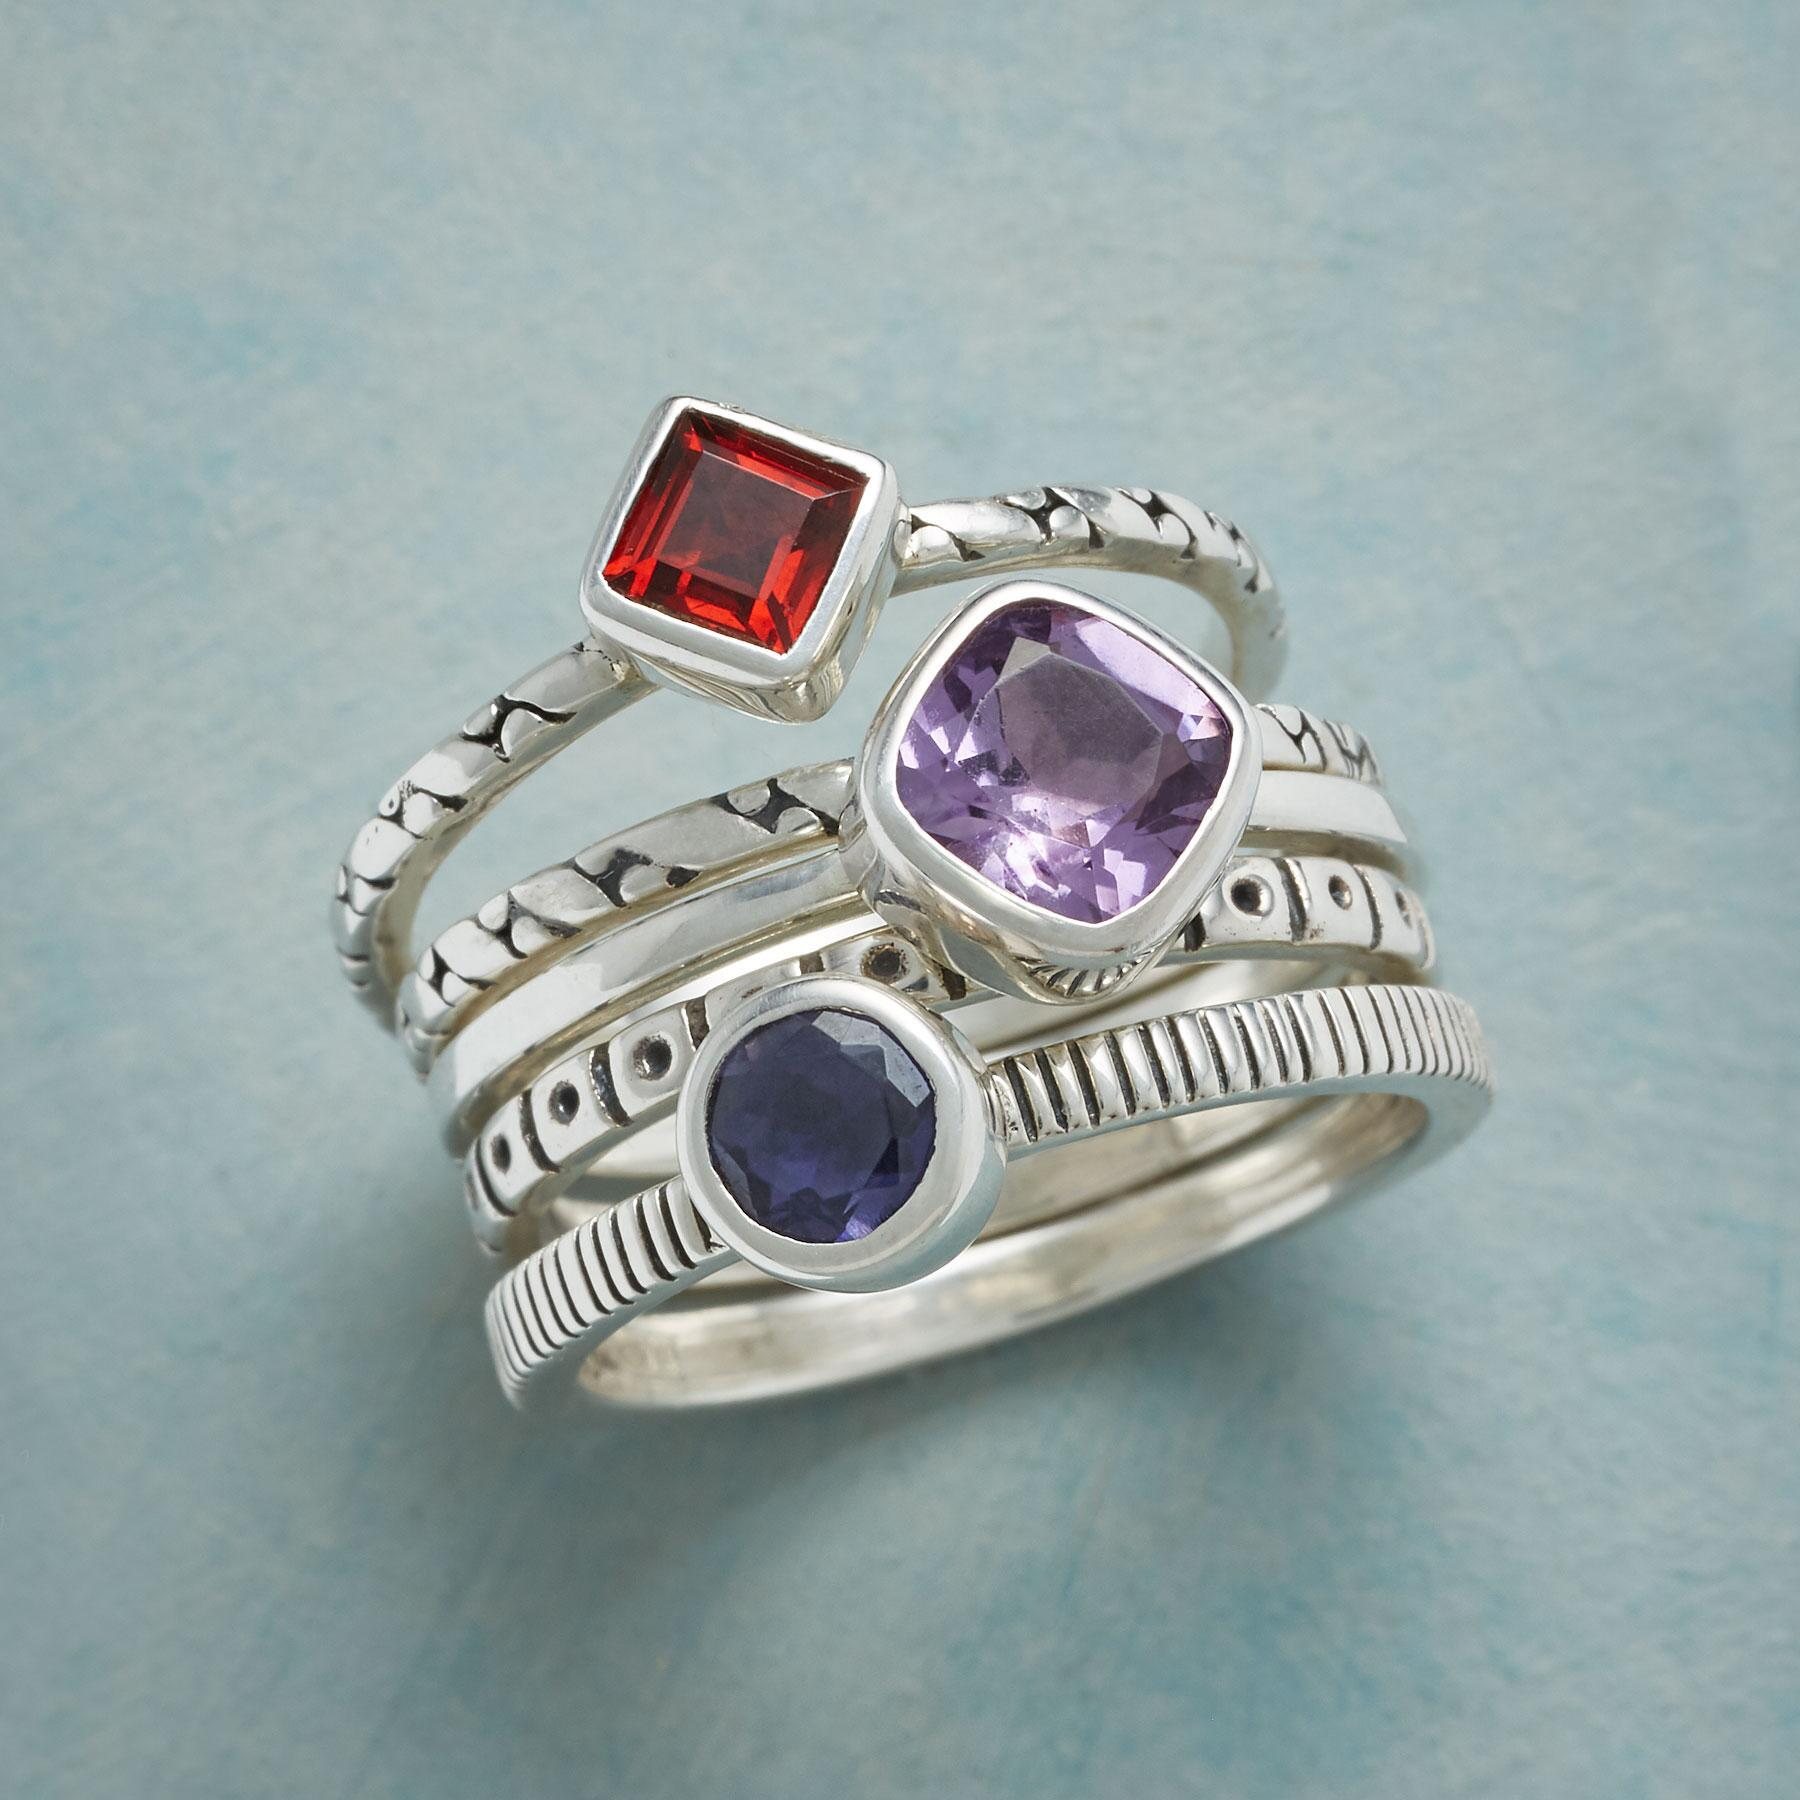 PLENTITUDE OF GEMS STACKING RINGS S/5: View 1